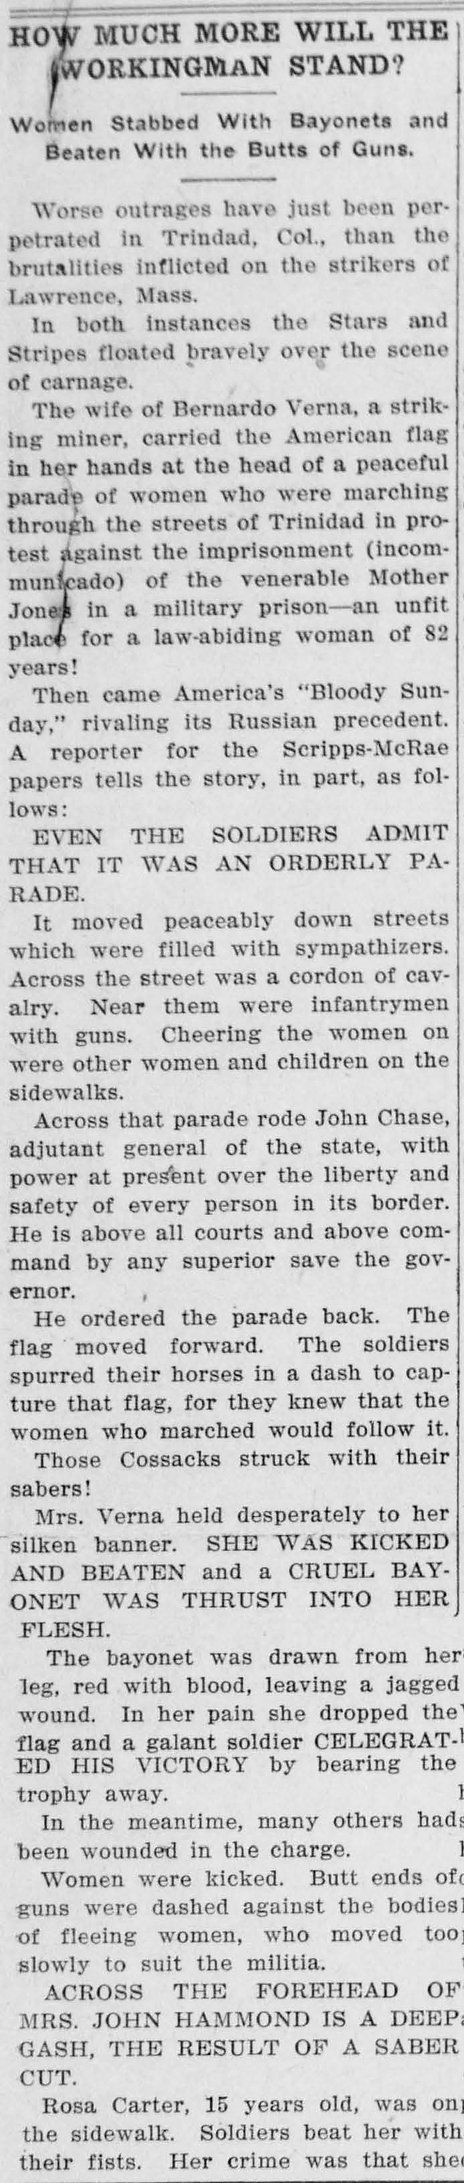 The Commonwealth., February 05, 1914 Ver